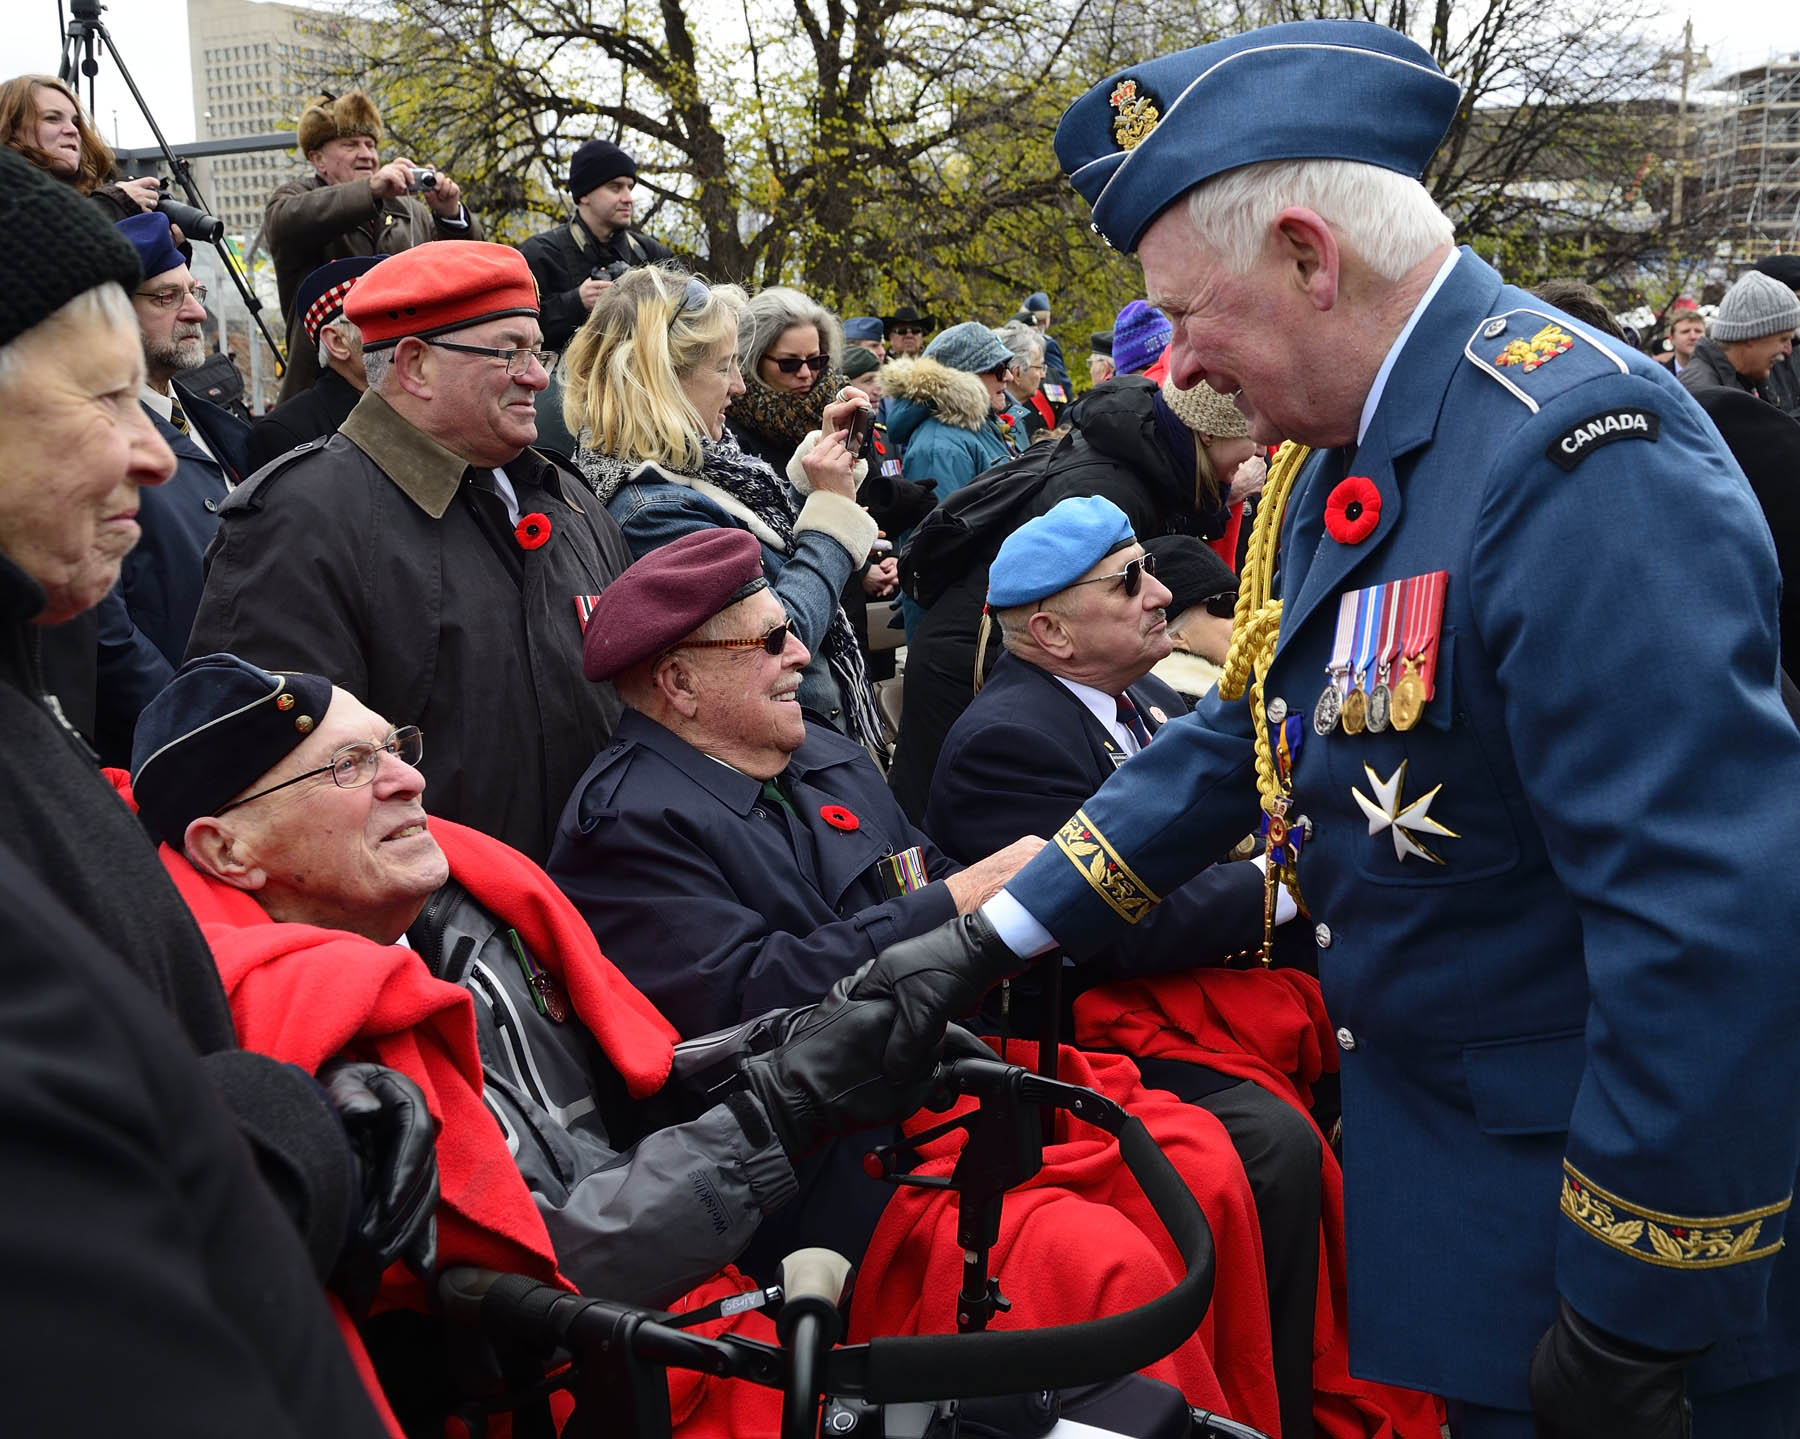 Their Excellencies took the time to personally thank the veterans for their sacrifice.